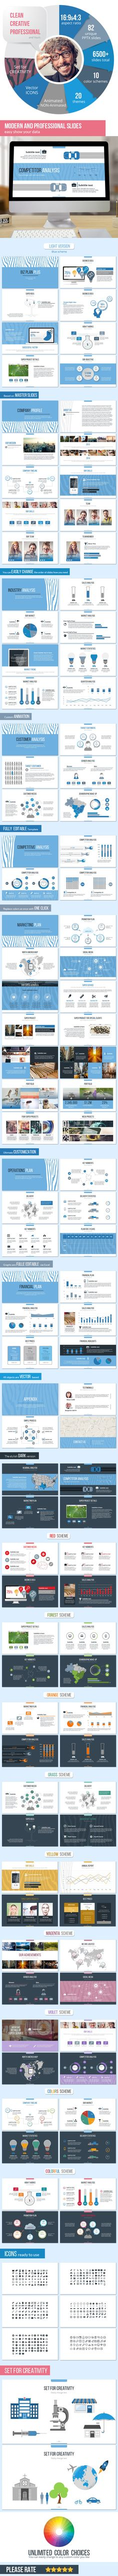 Business Plan+ PowerPoint Presentation Template (PowerPoint Templates)